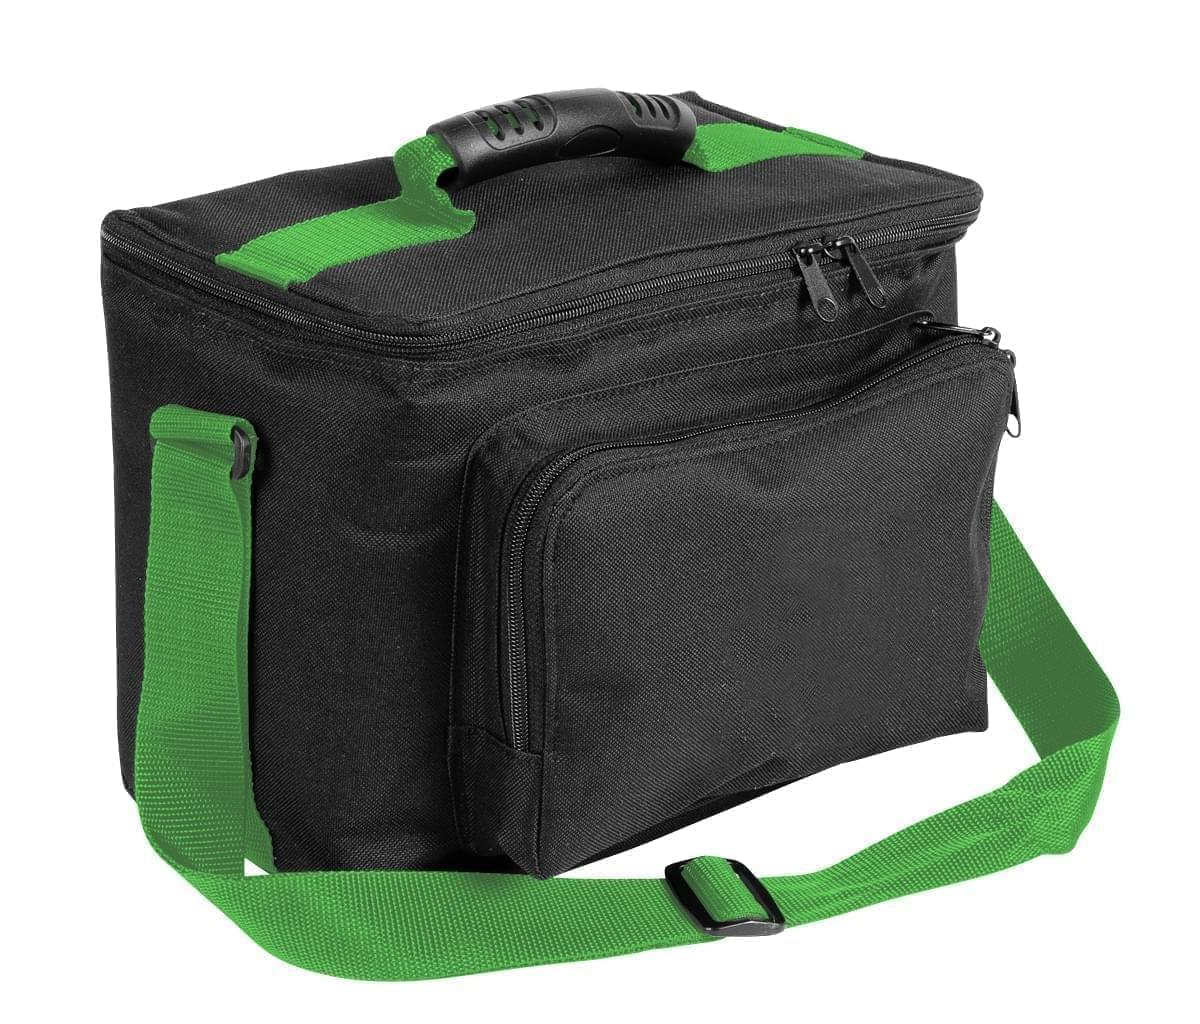 USA Made Nylon Poly Lunch Coolers, Black-Lime, 11001161-AOY